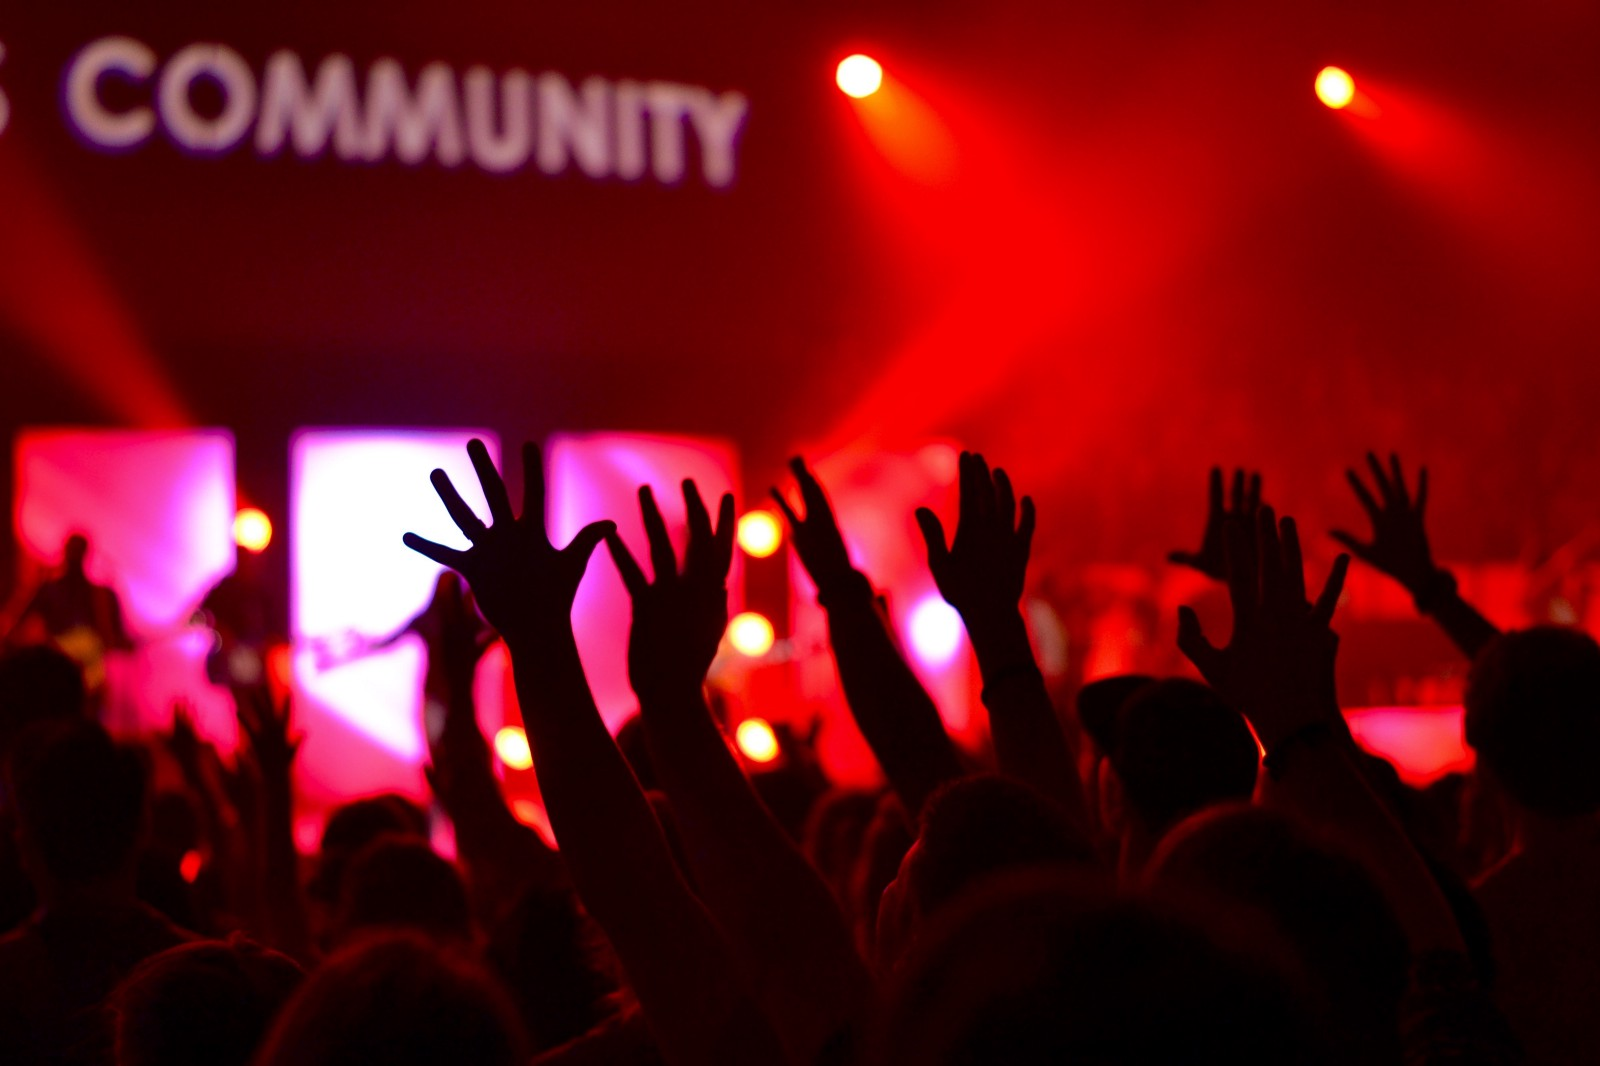 email is best for building a community